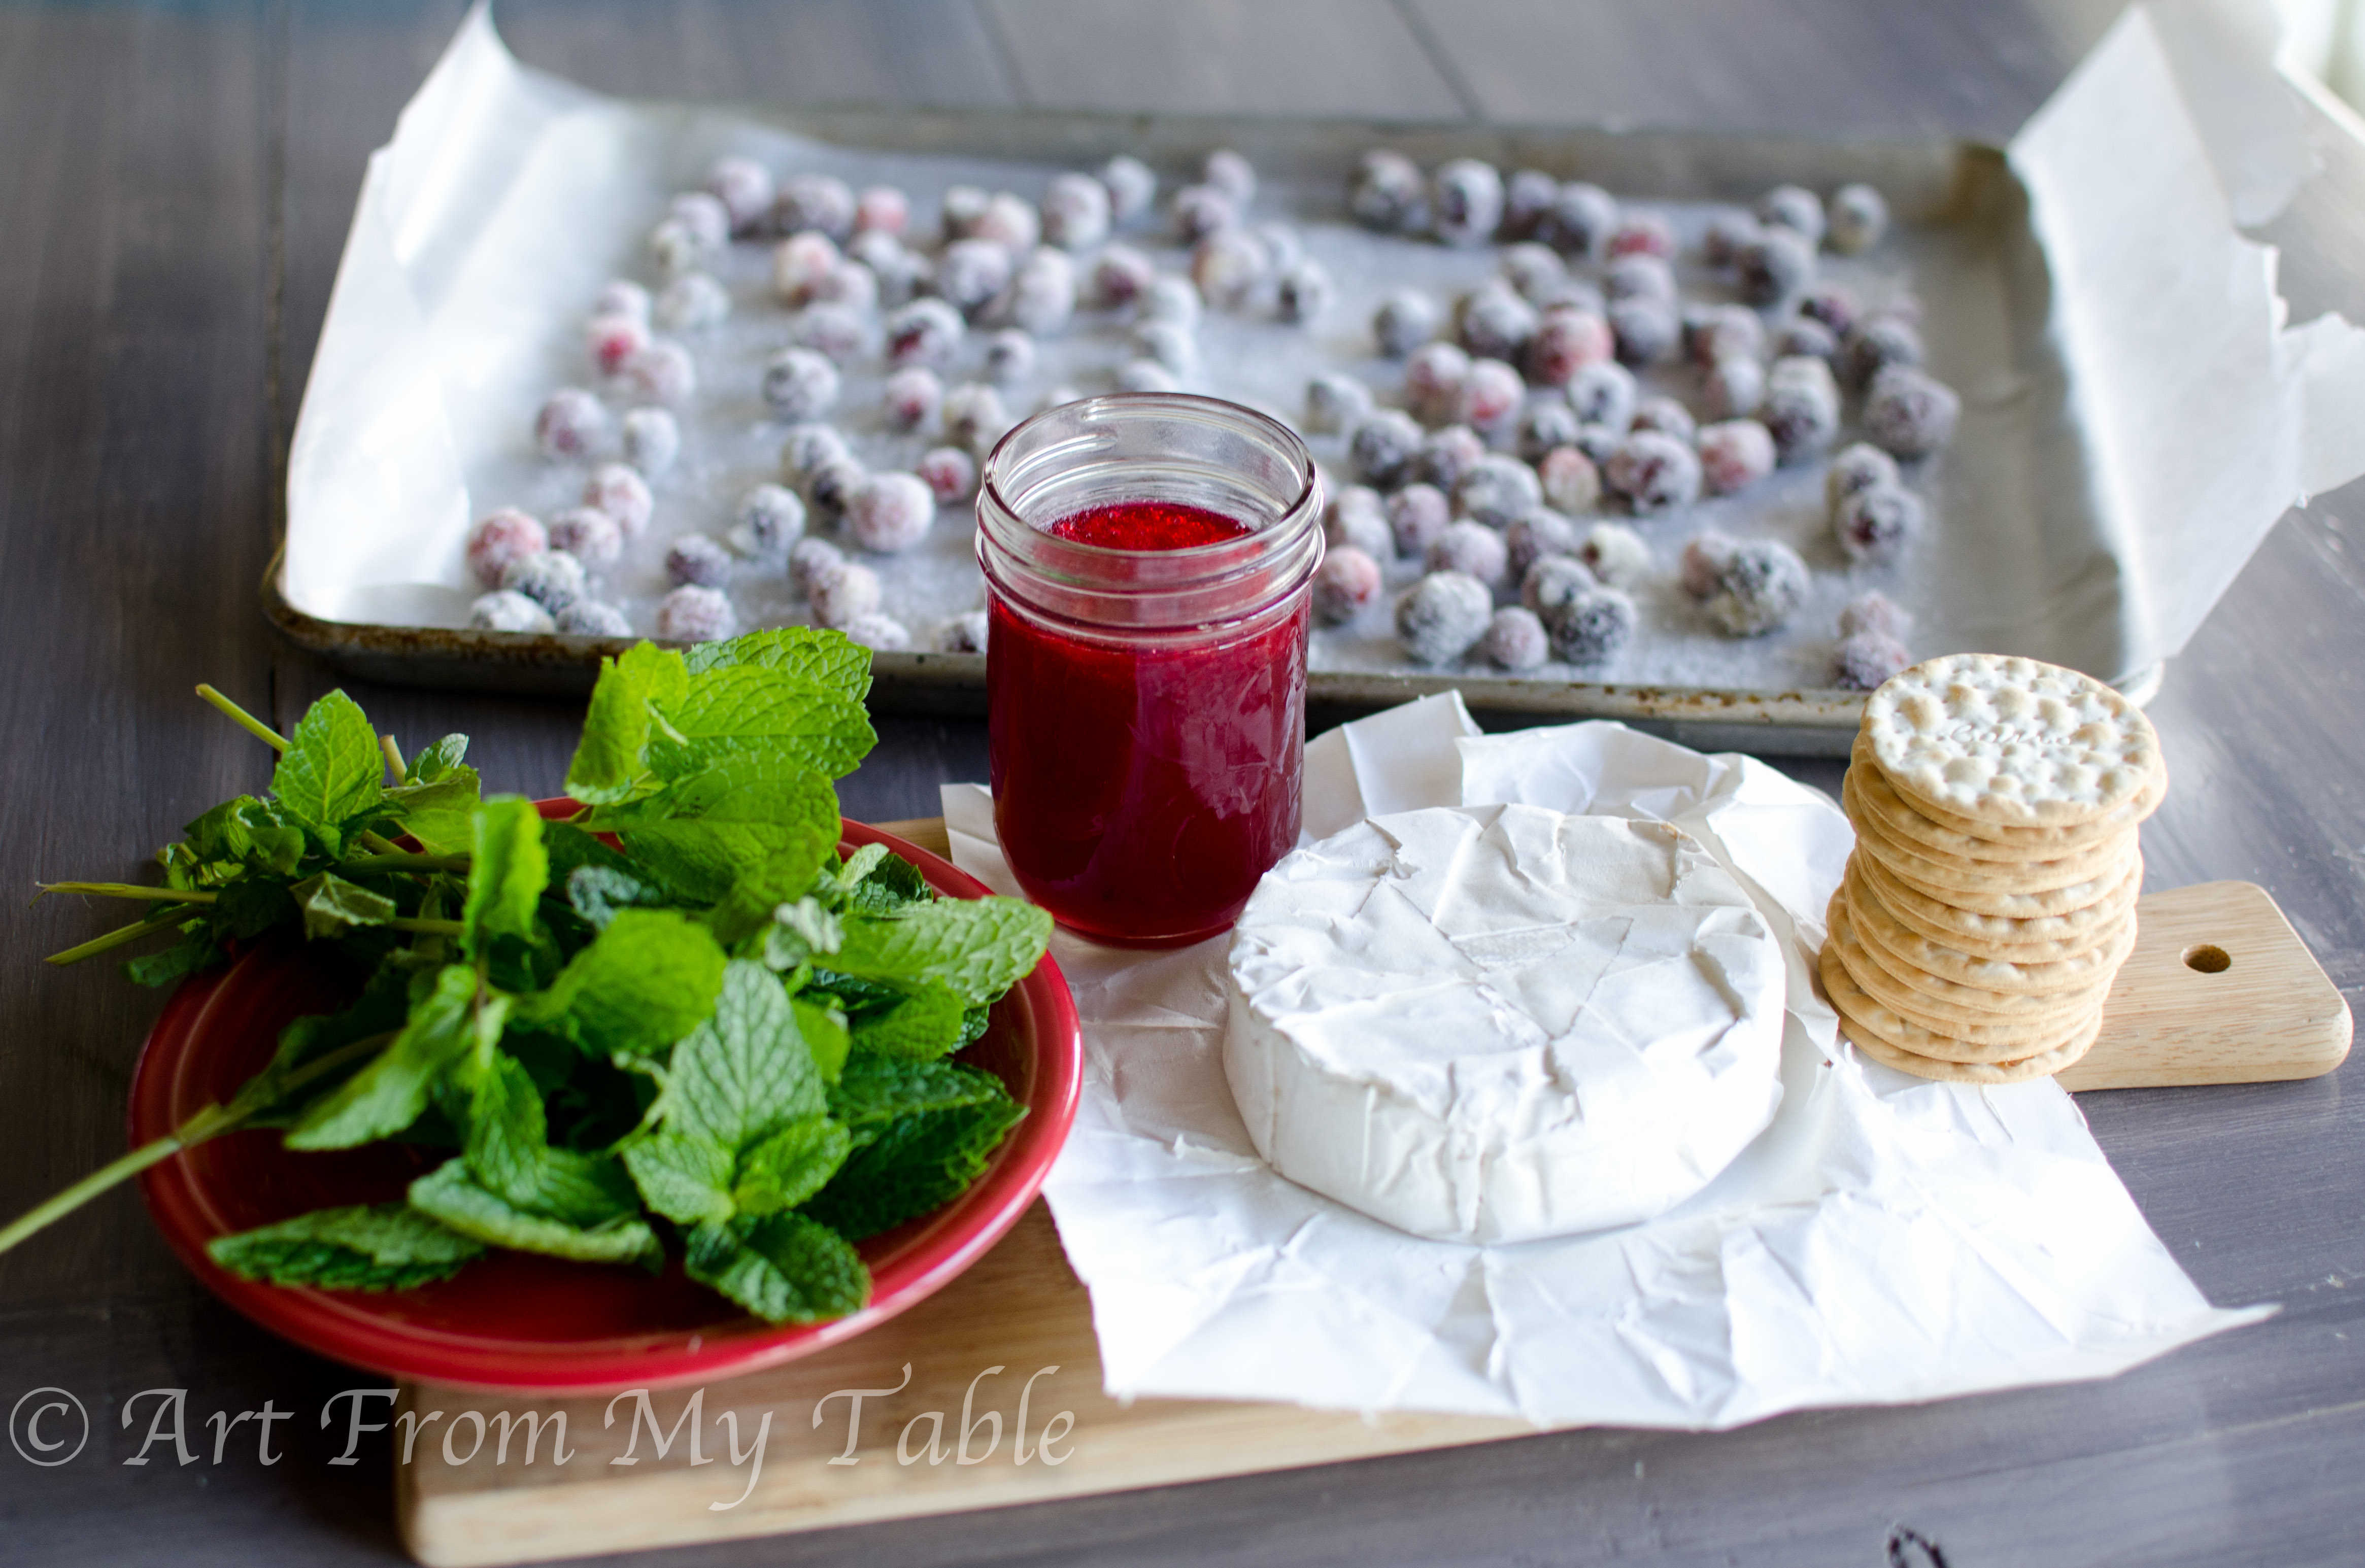 Ingredients for cranberry brie bites: crackers, brie, cranberry sauce, sugared cranberries, and fresh mint leaves.